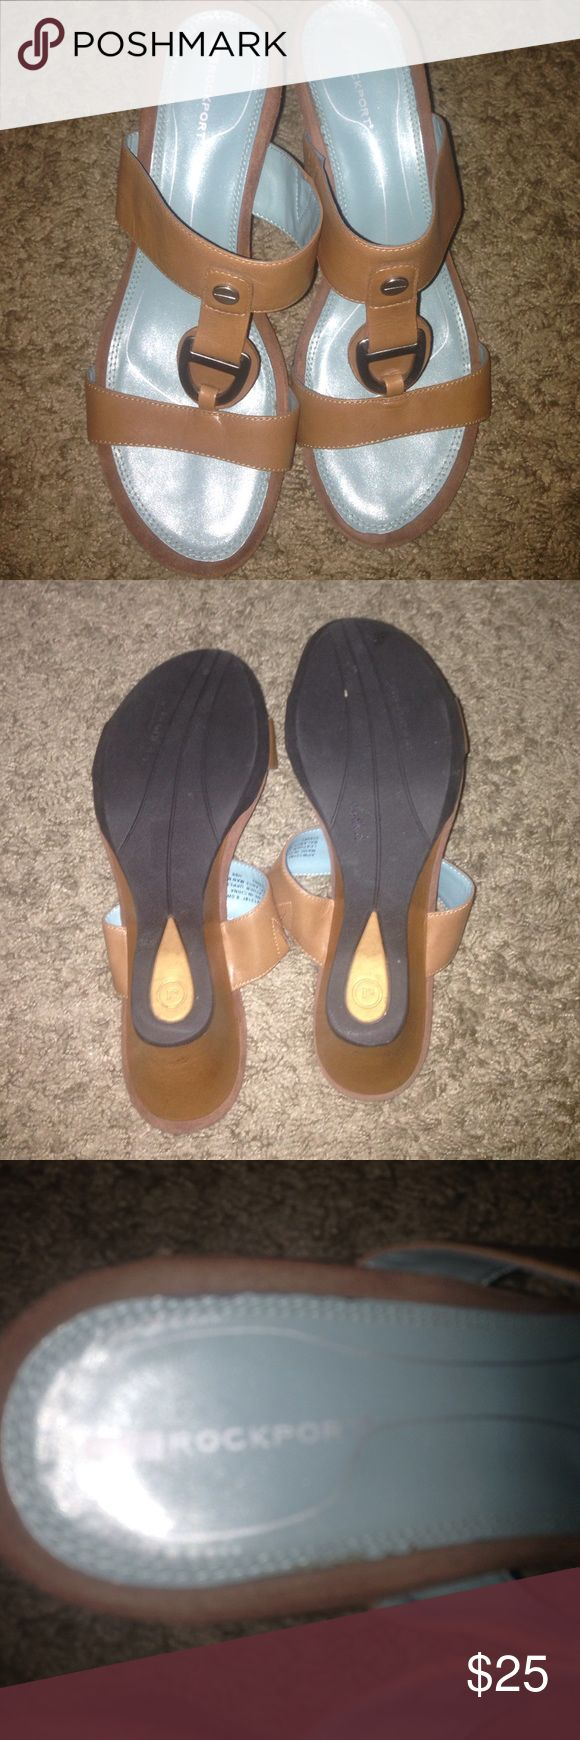 Women's size 8.5W rockport wedges Like new Rockport Shoes Wedges